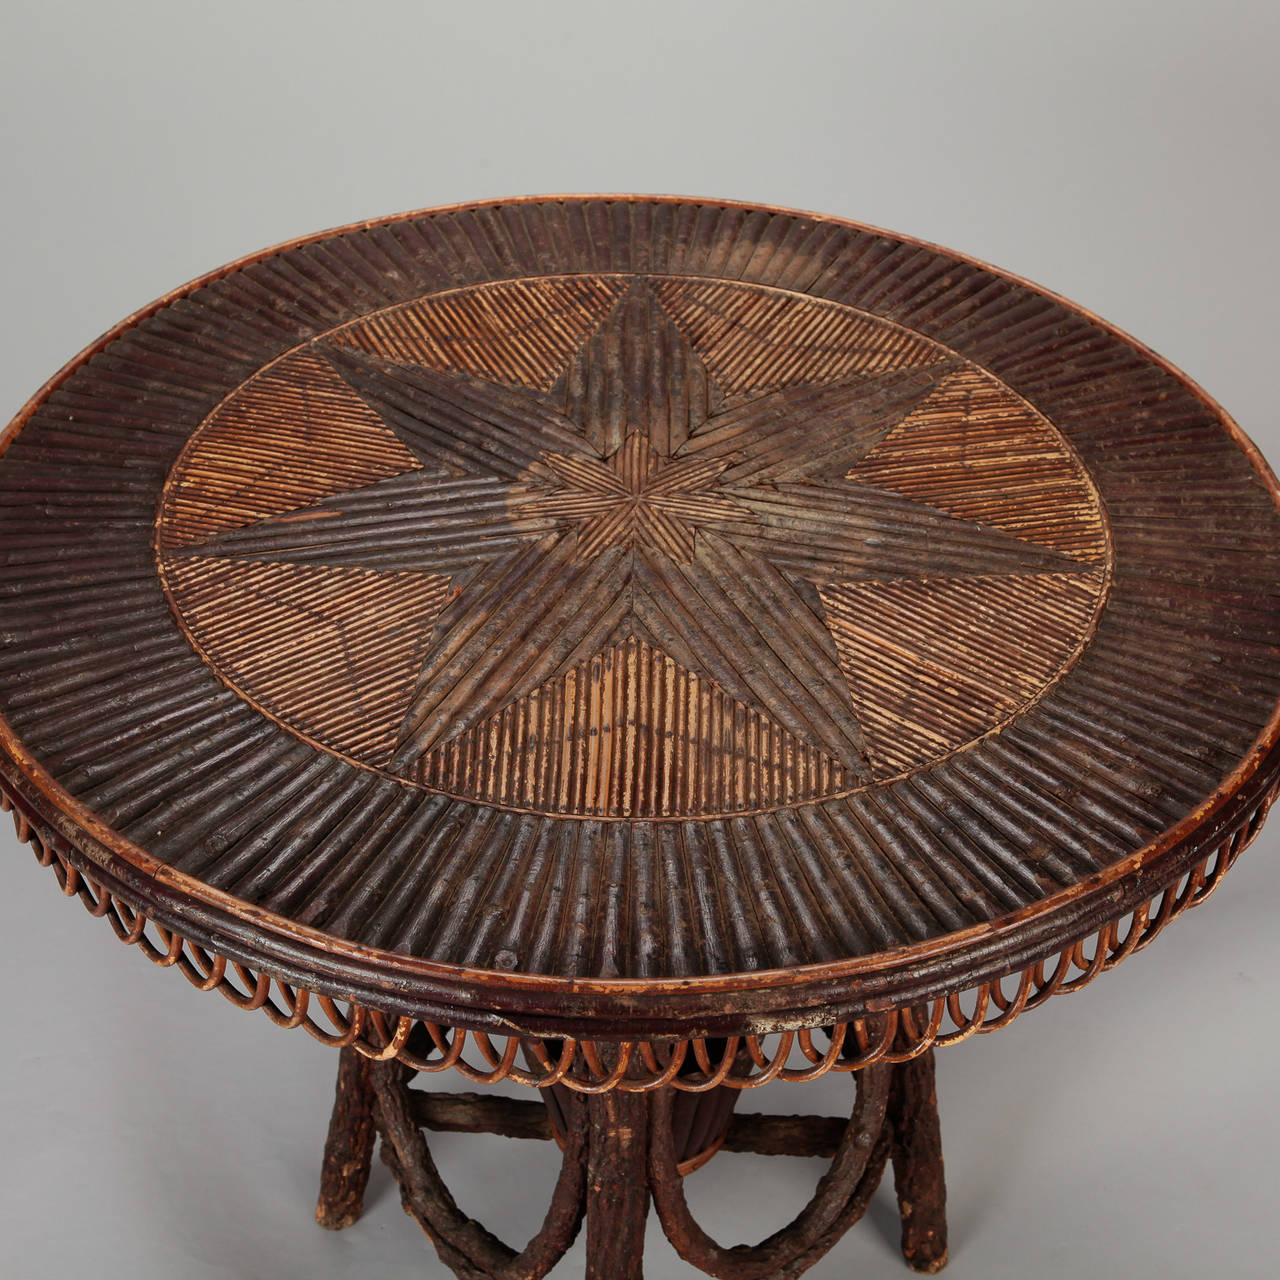 Bent Willow Furniture For Sale